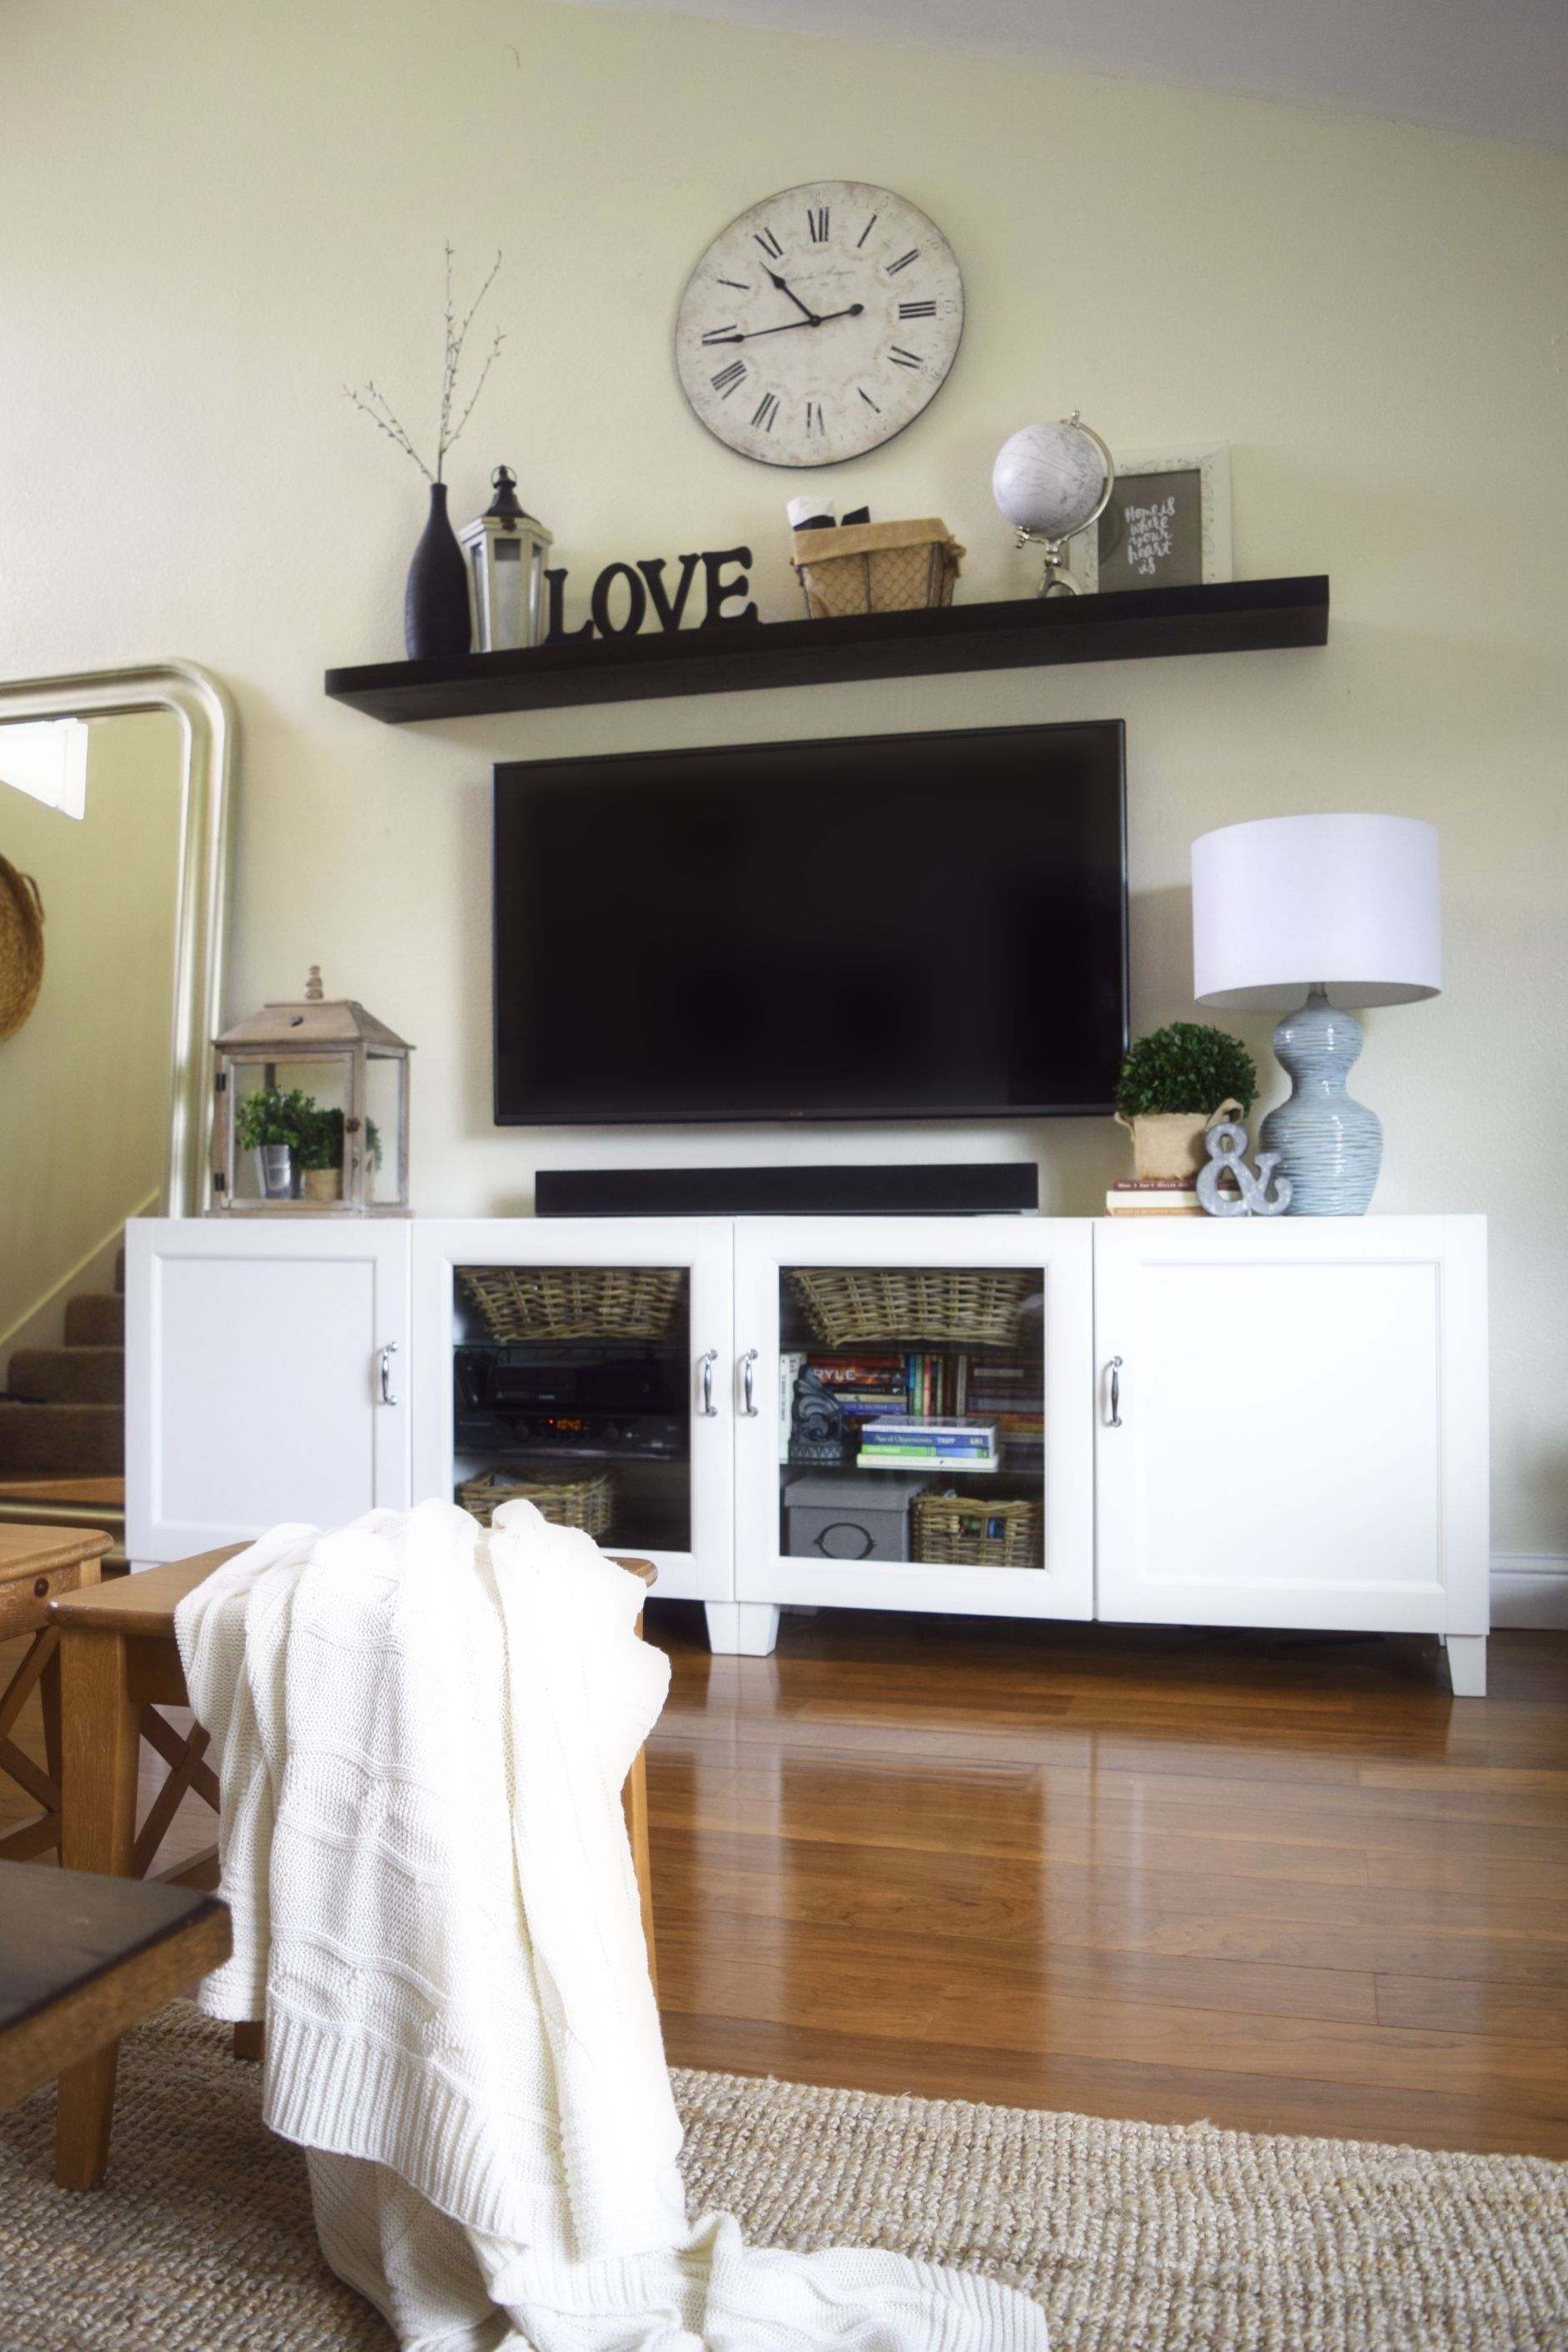 11 diy projects for your living room tv walls tvs and walls